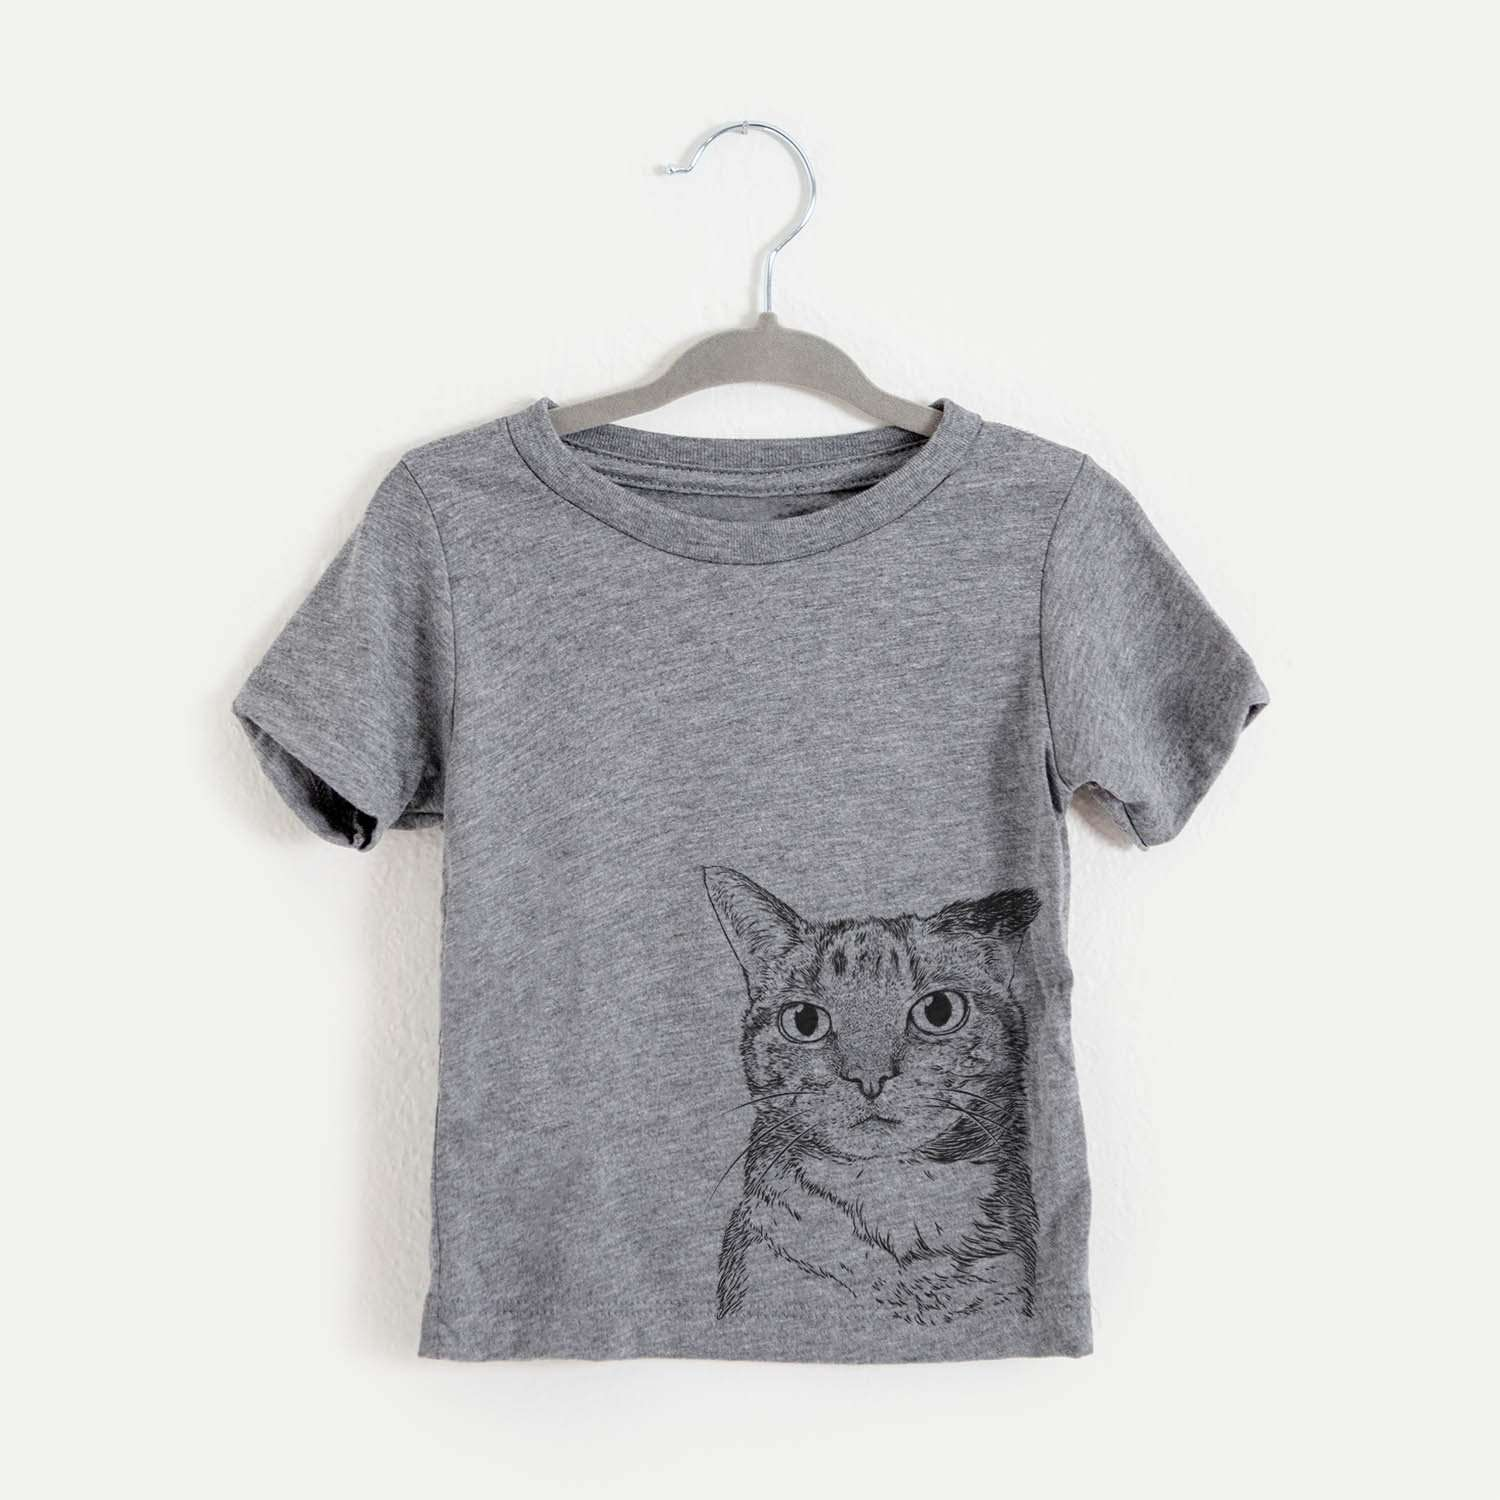 Eleanor the Domestic Shorthair - Kids/Youth/Toddler Shirt